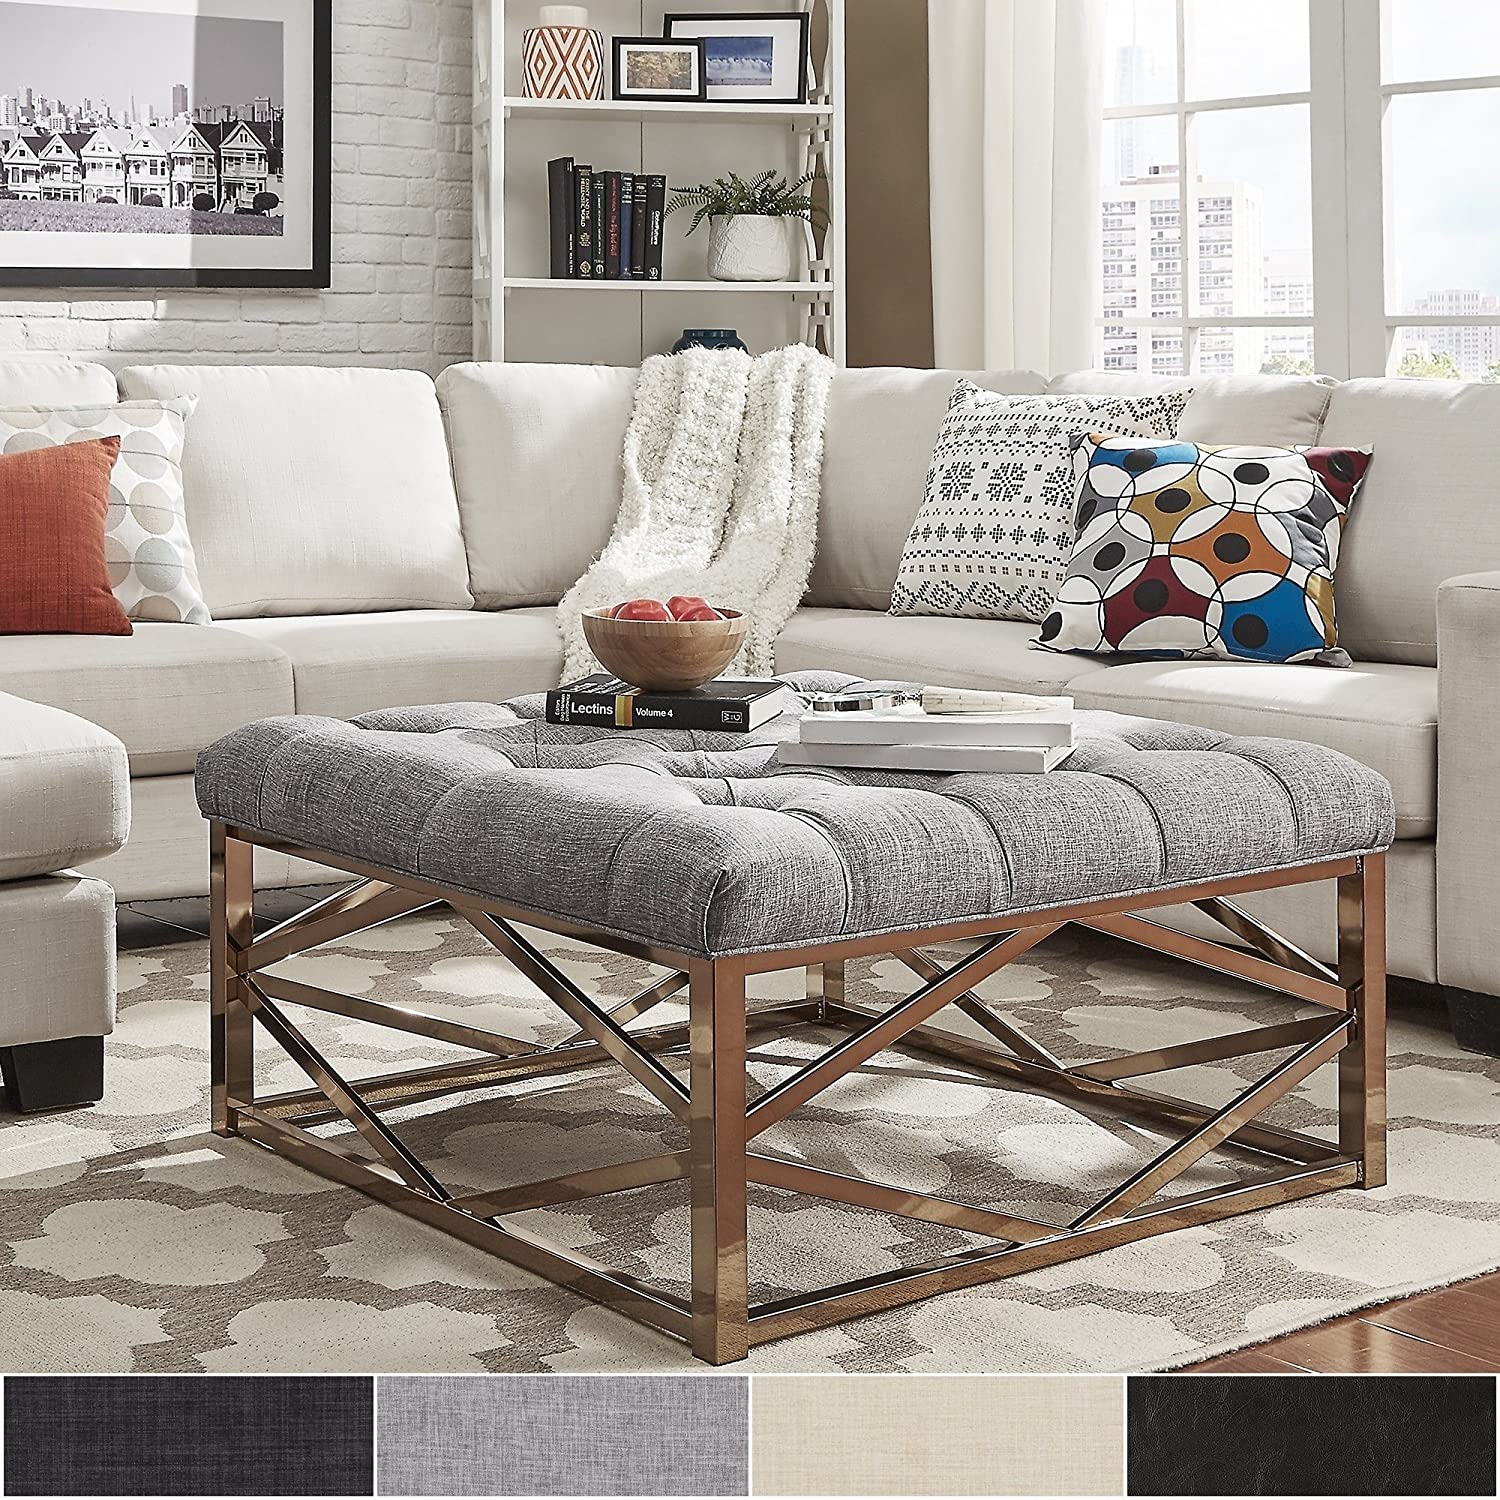 Amazon.com: iNSPIRE Q Solene Geometric Base Square Ottoman Coffee Table -  Champagne Gold by Bold Brown: Kitchen & Dining